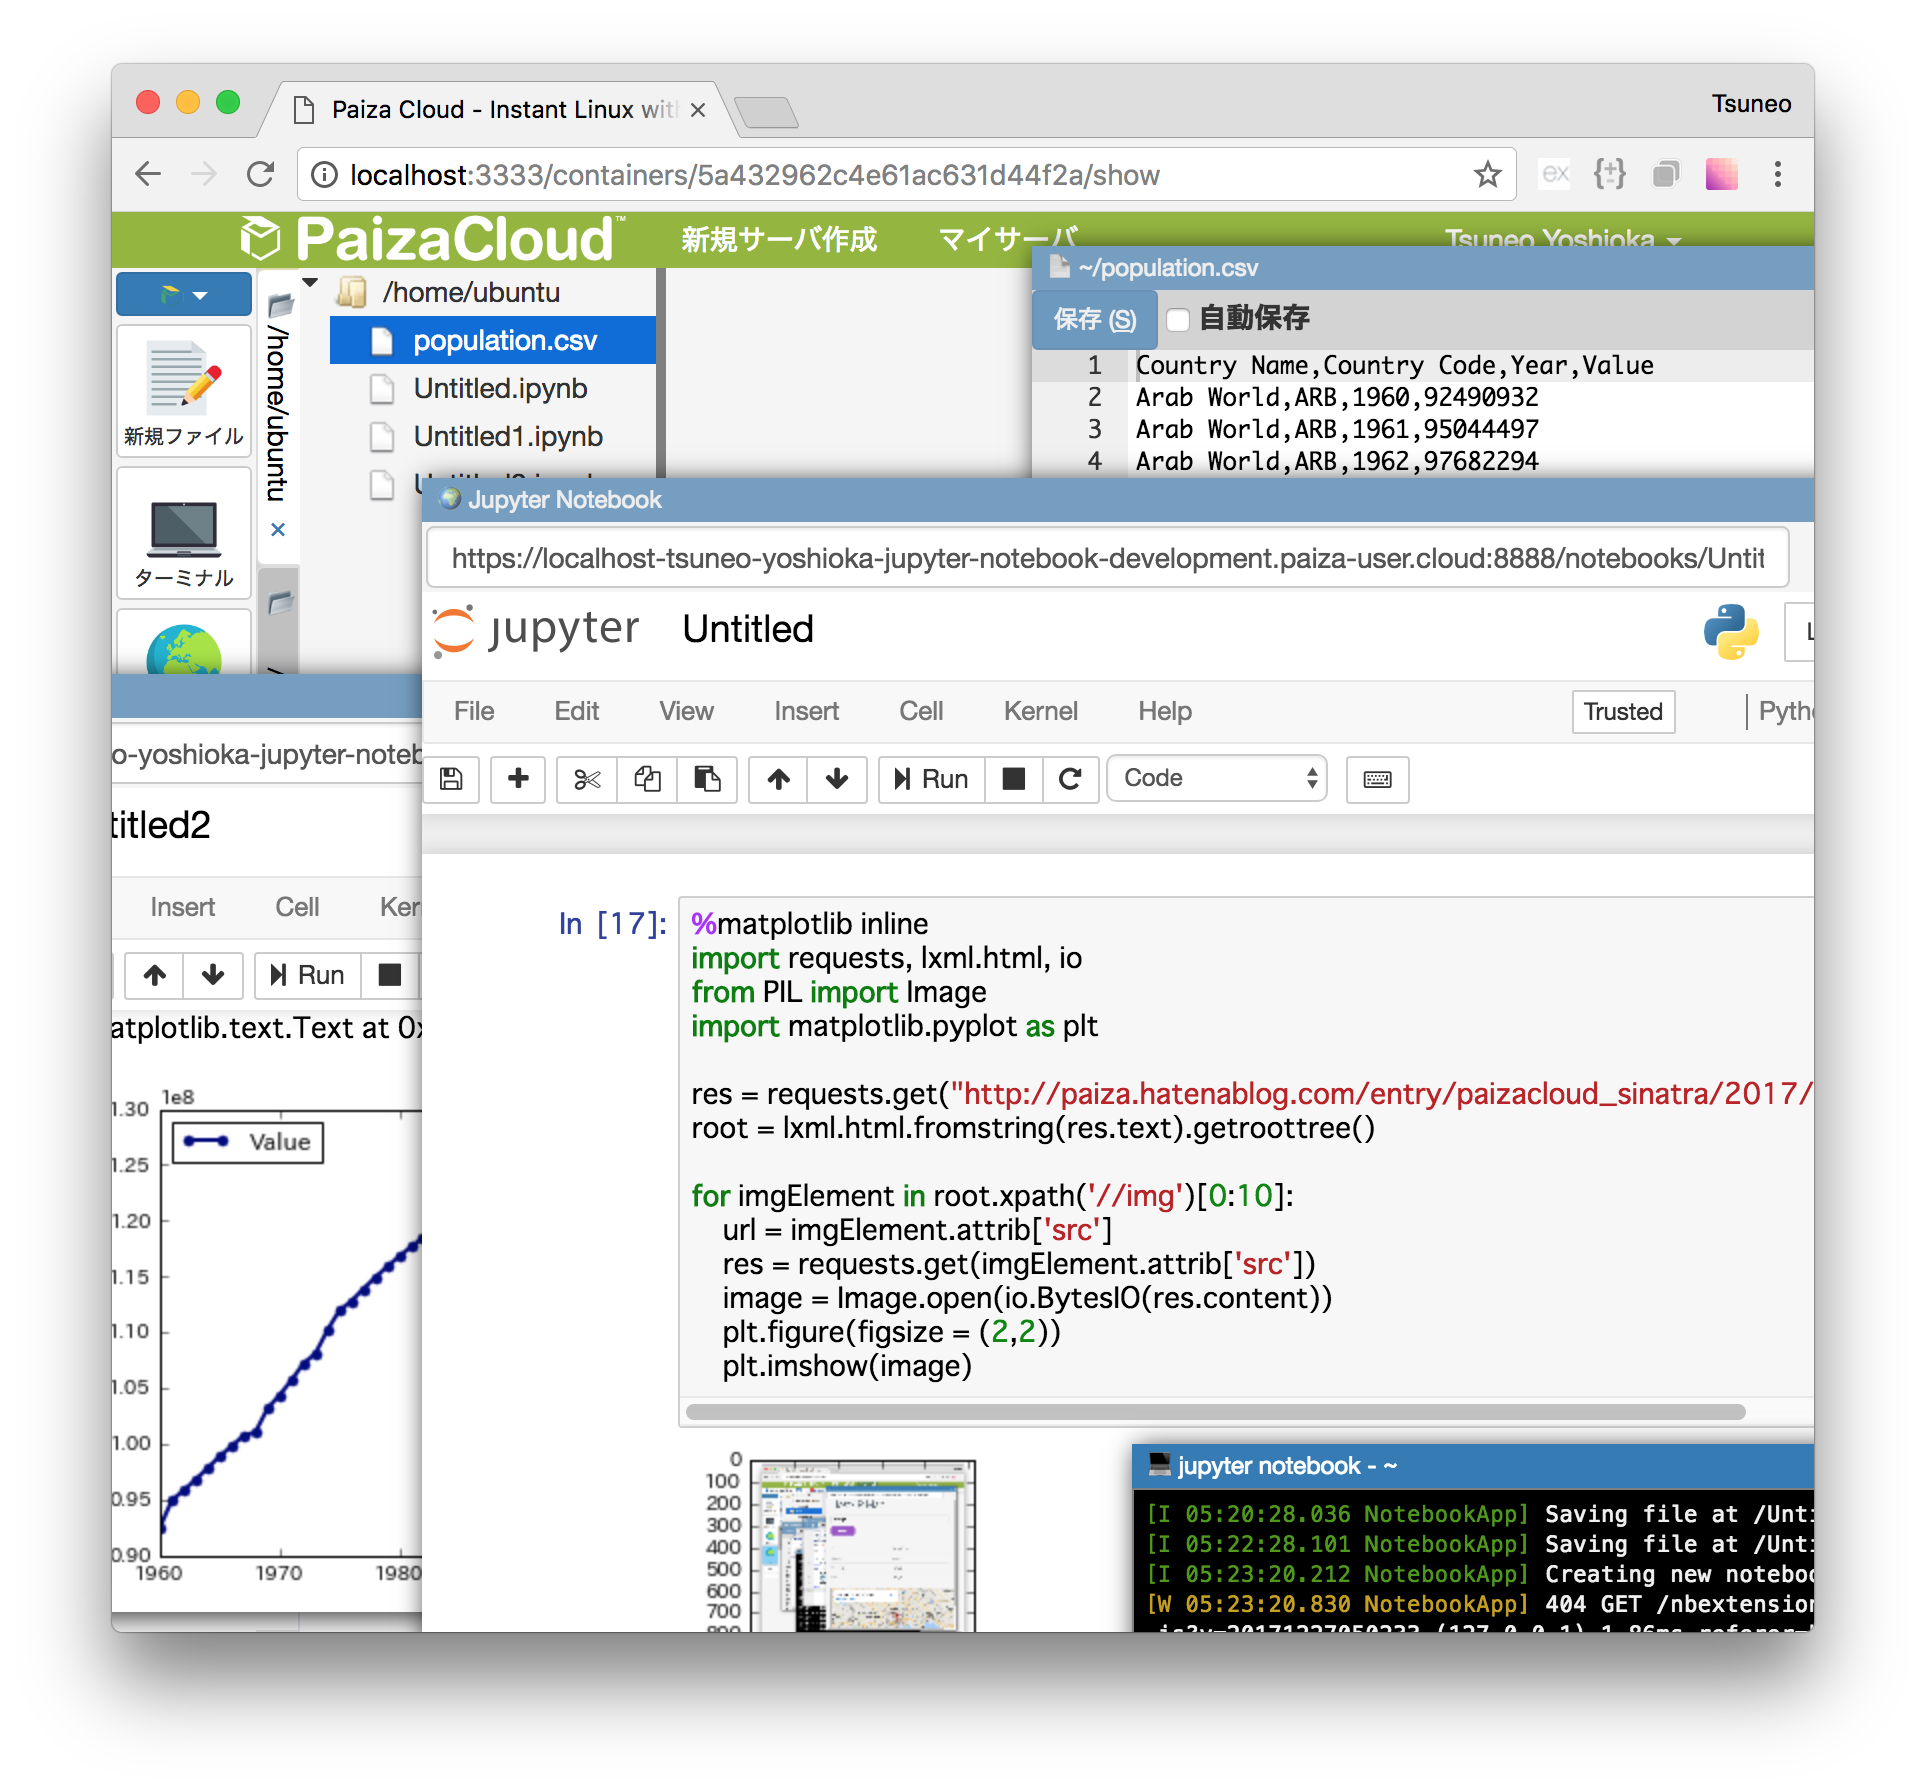 Jupyter Notebook Online - [Jupyter Notebook Cloud IDE] Browser-based